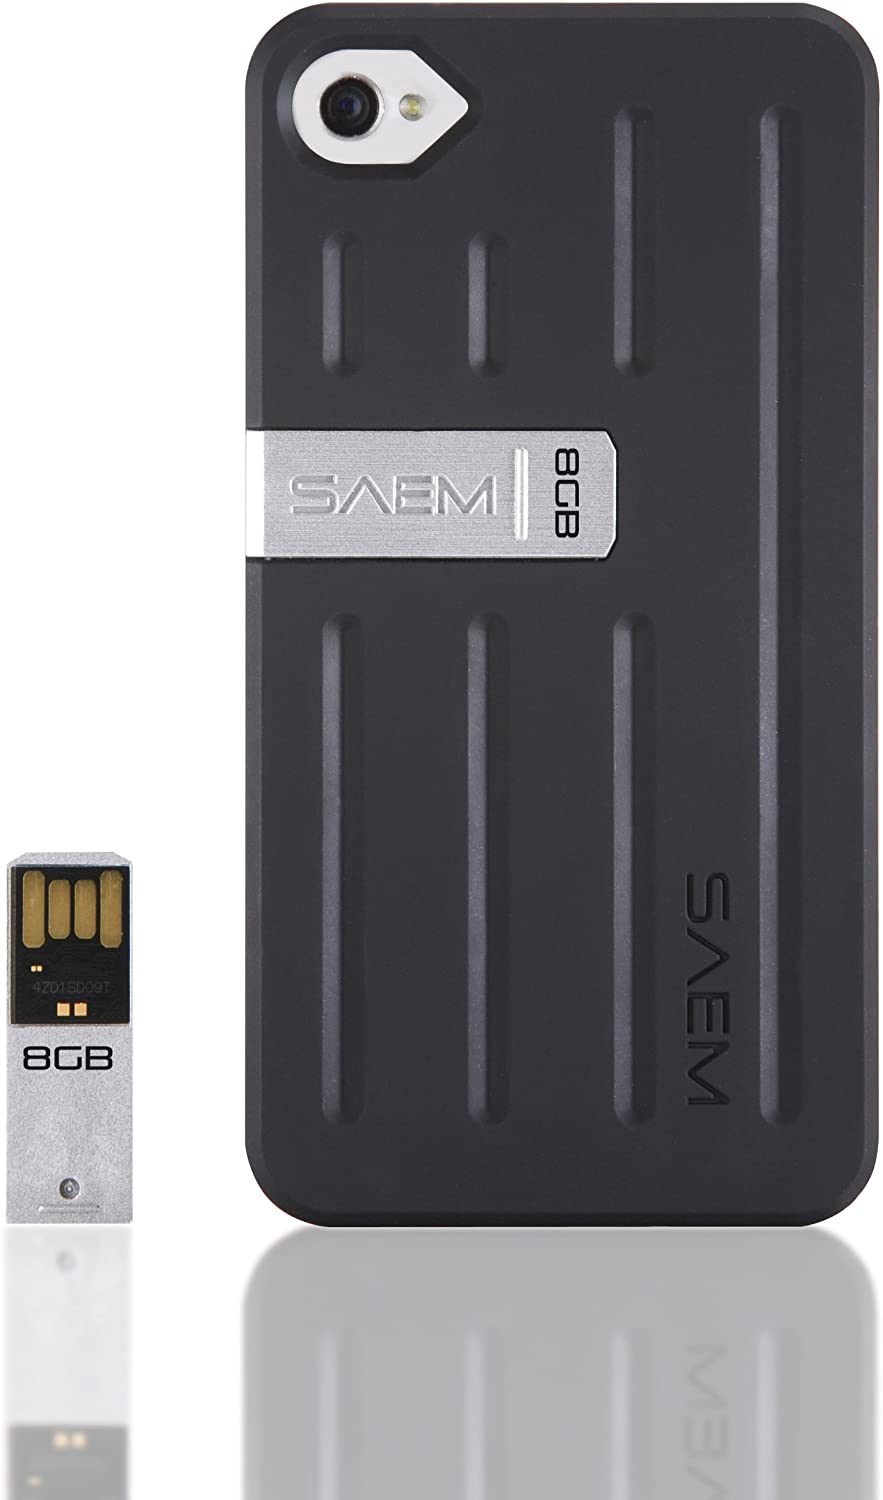 Veho VUS-001-4B SAEM S7 Case with 8GB Integrated USB Memory Drive for iPhone 4/4S - Tacton Black